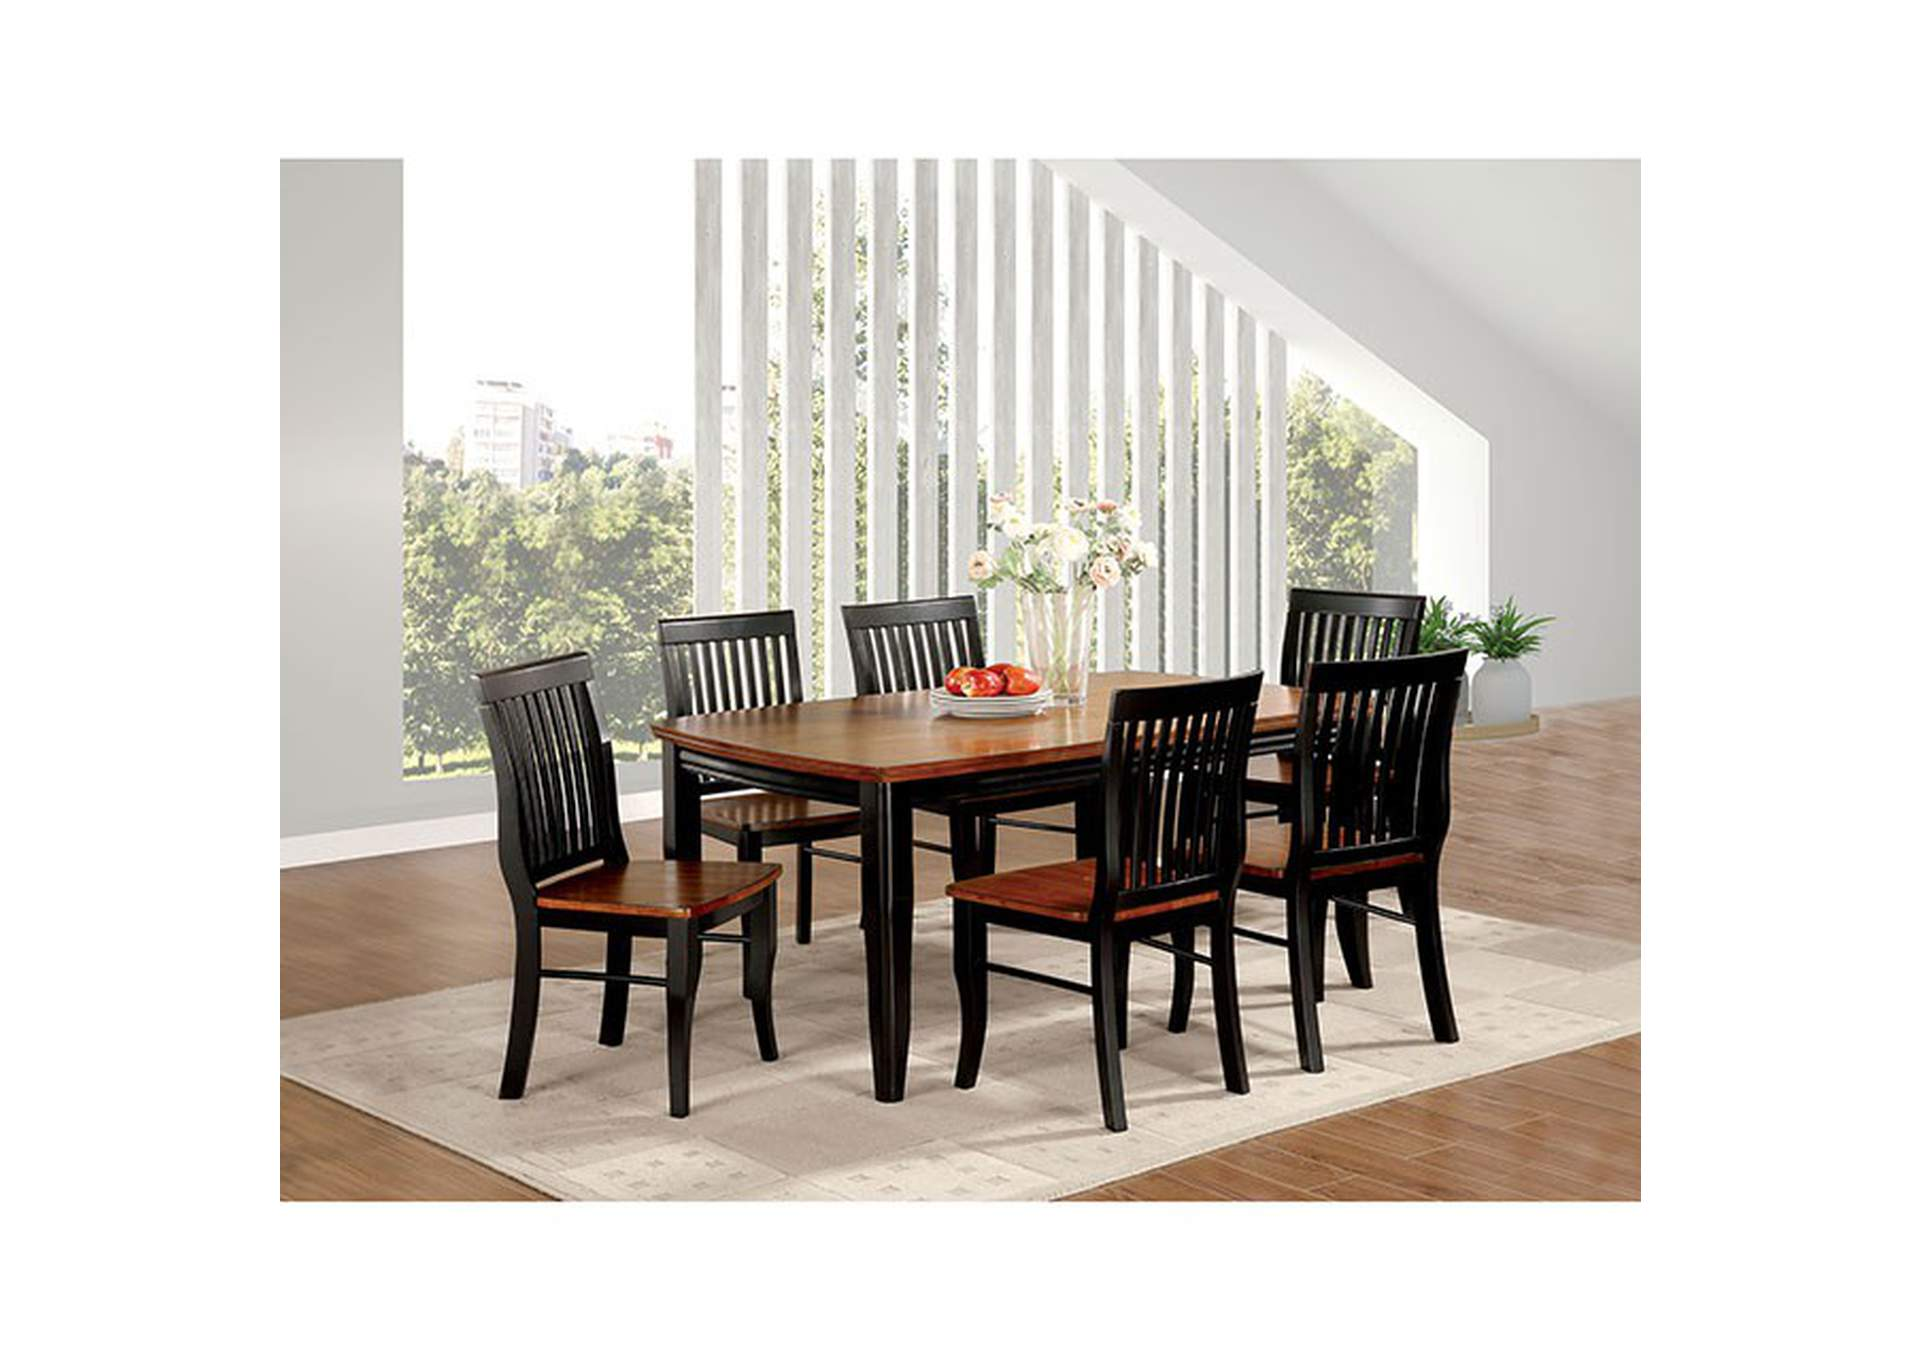 Earlham Black & Oak Dining Table,Furniture of America